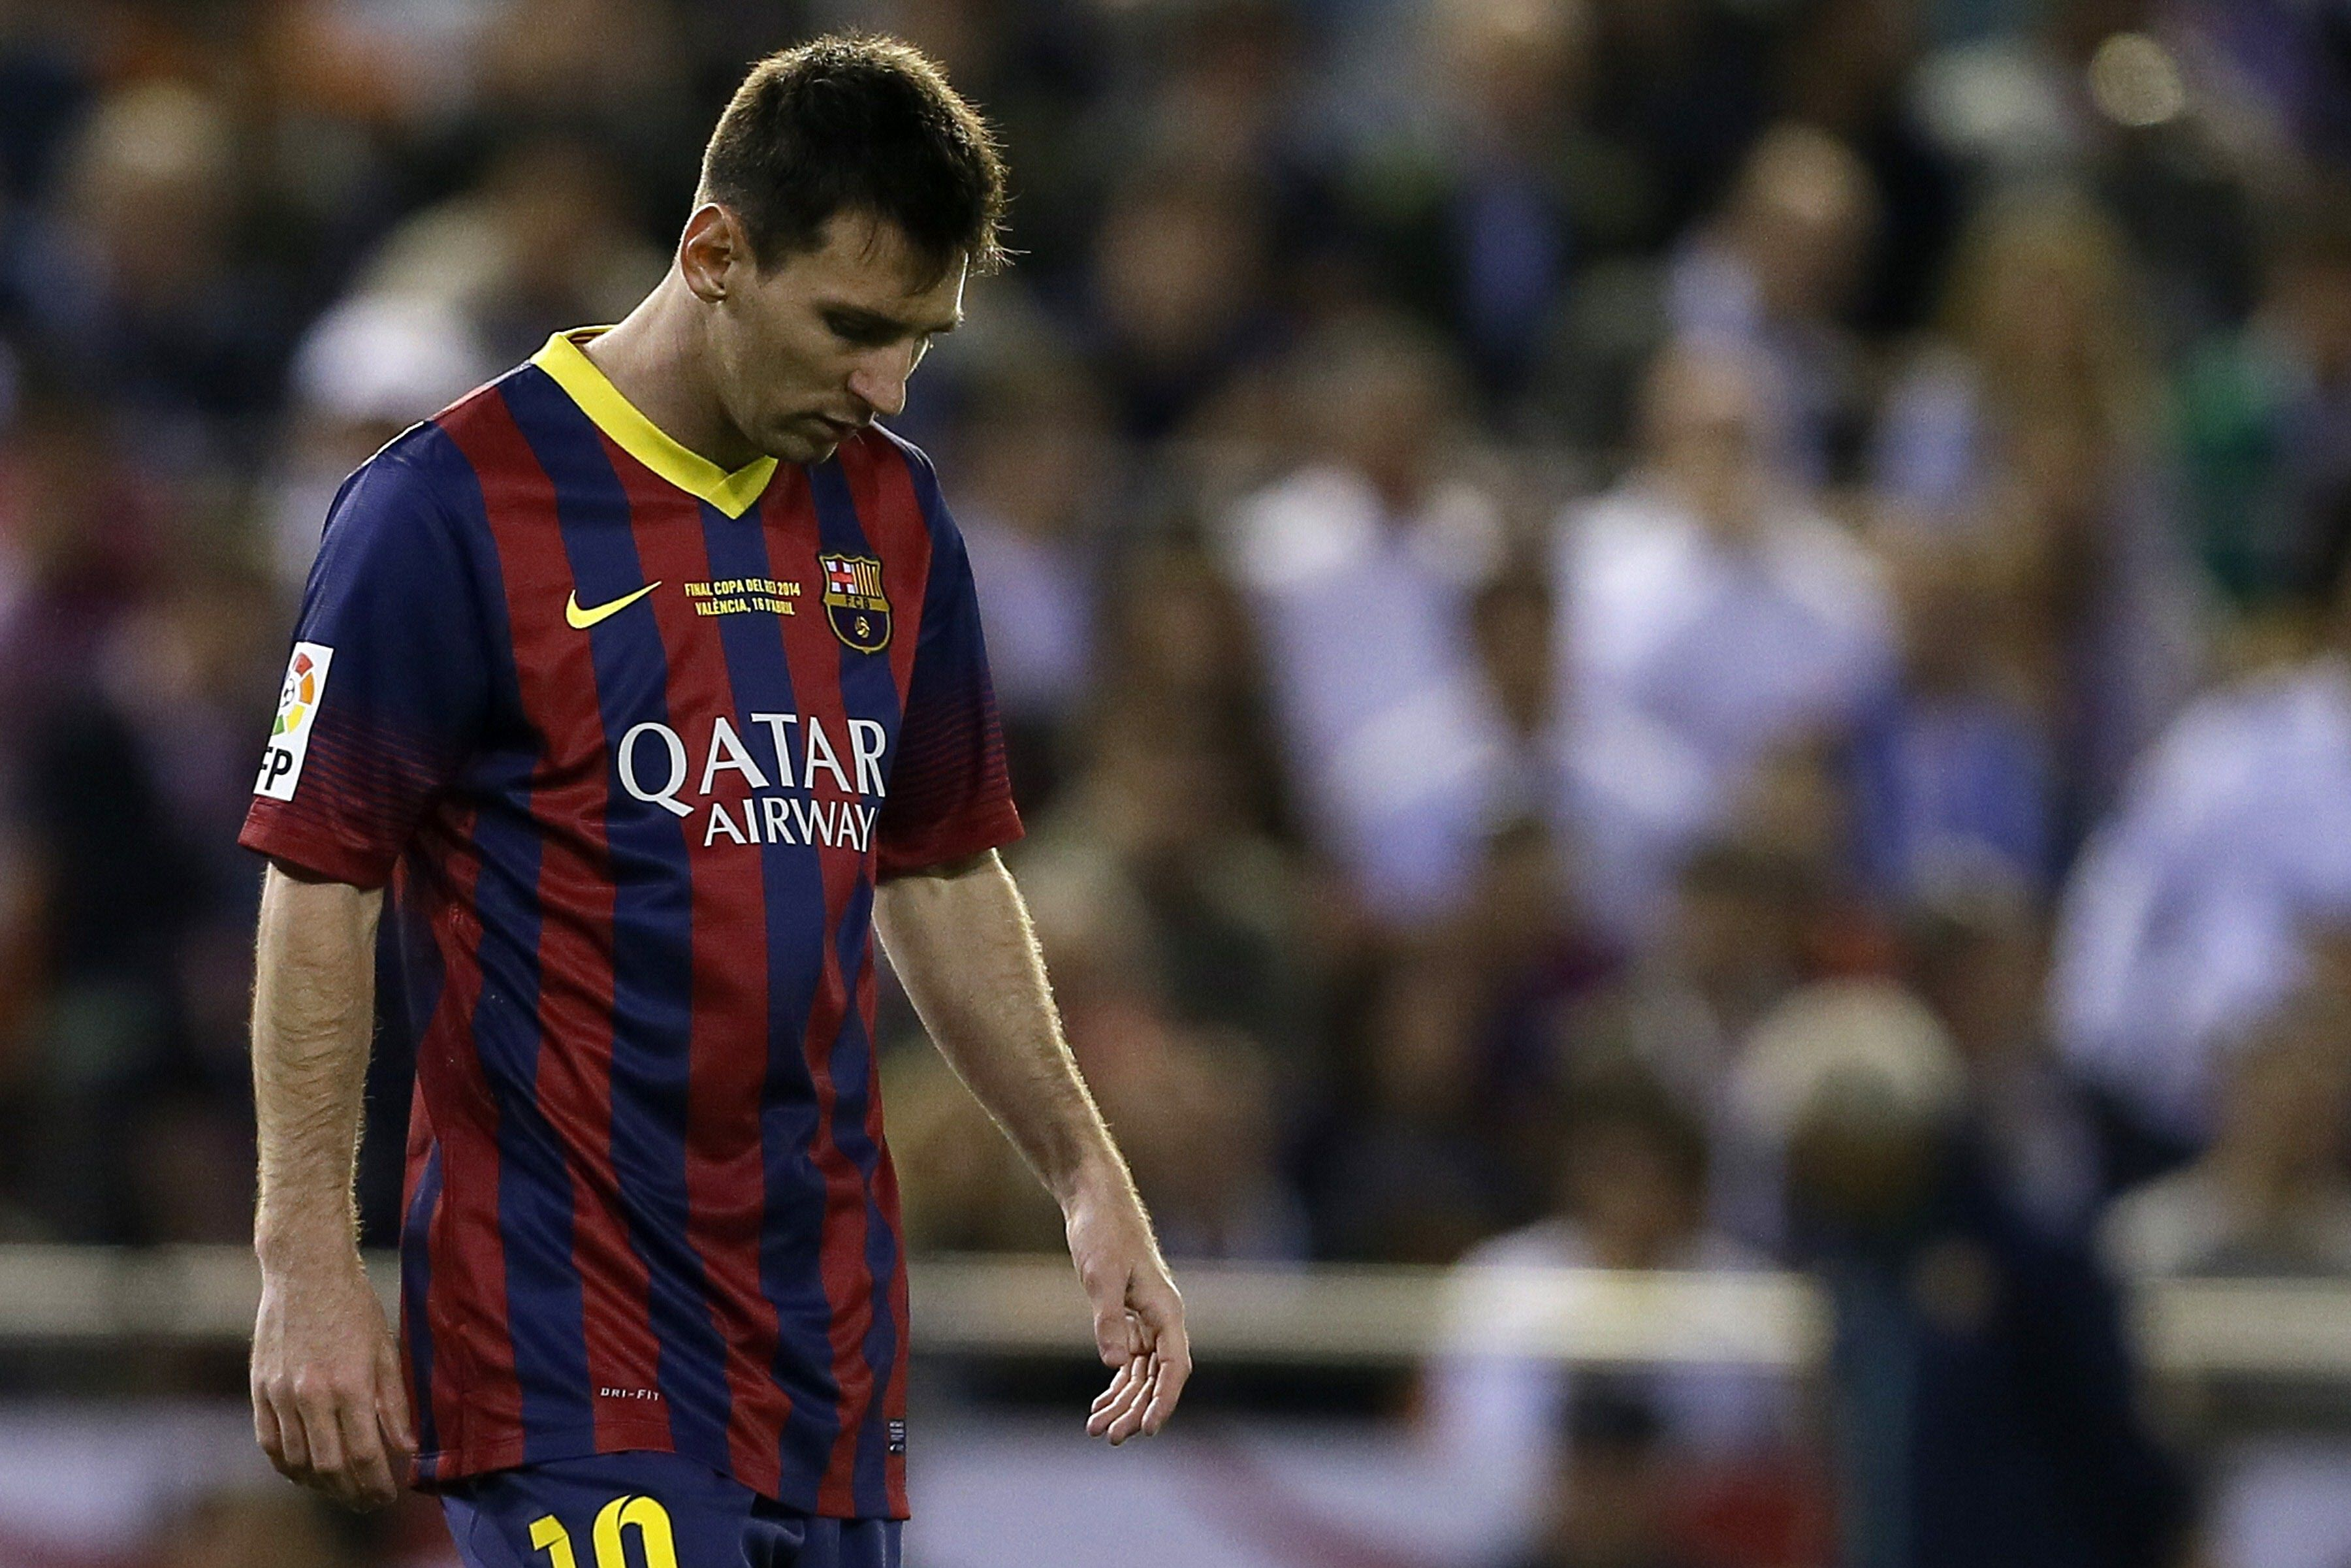 FC Barcelona: What went wrong this season?